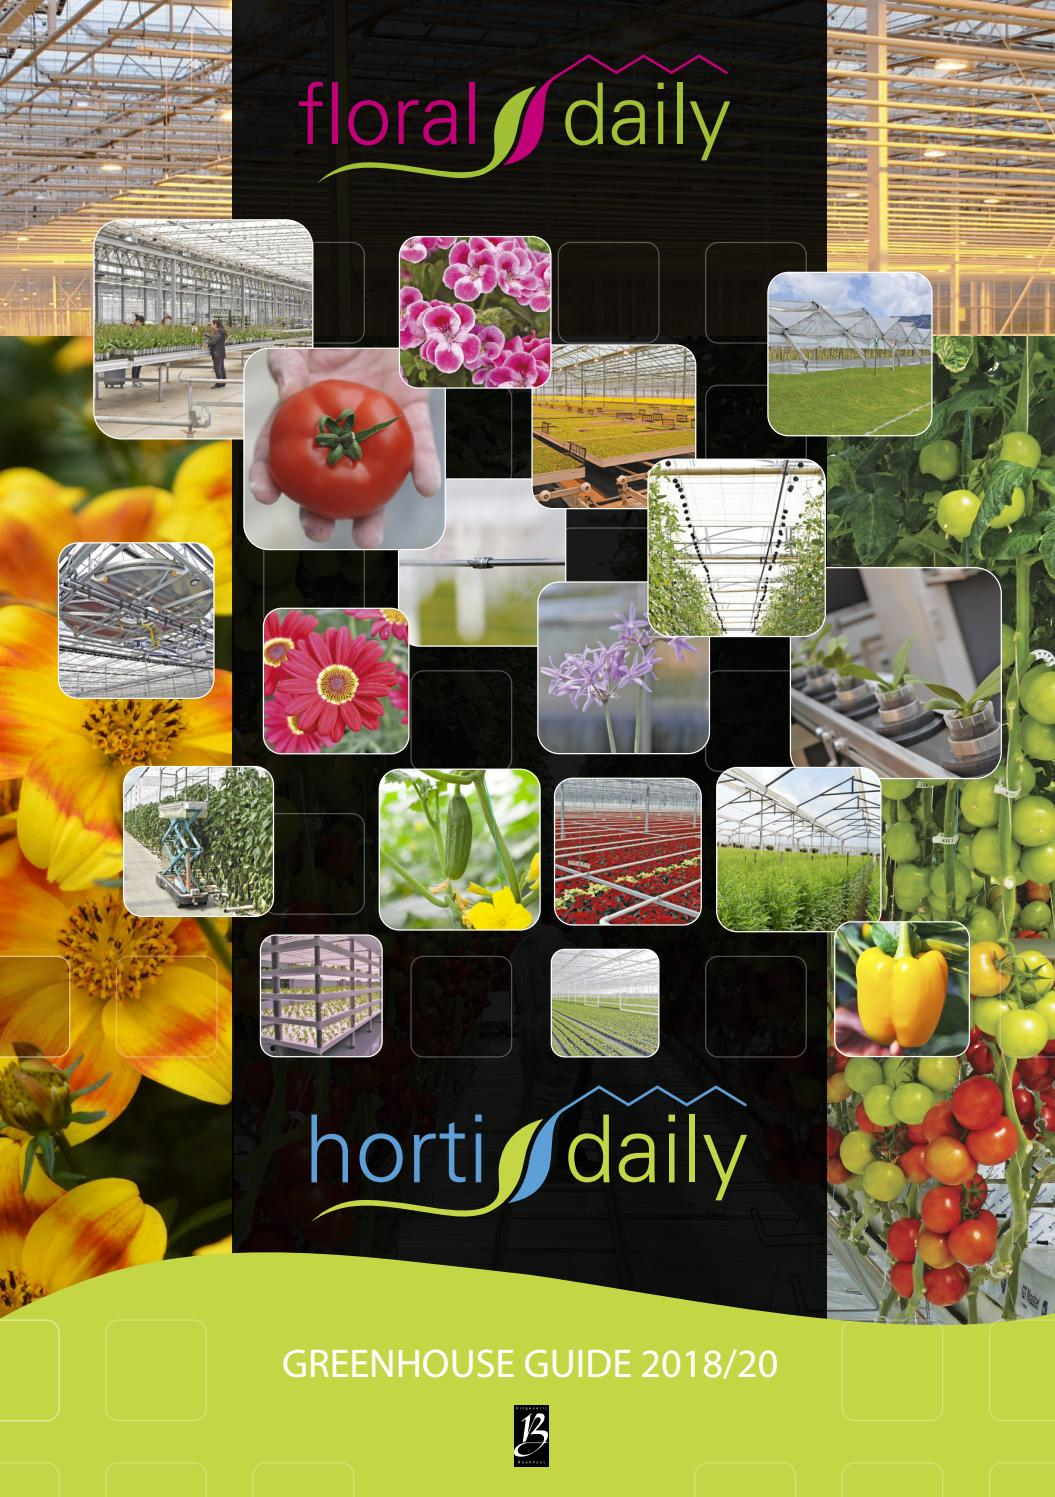 Greenhouse Guide 2018 20 By Agf Vormgeving Issuu